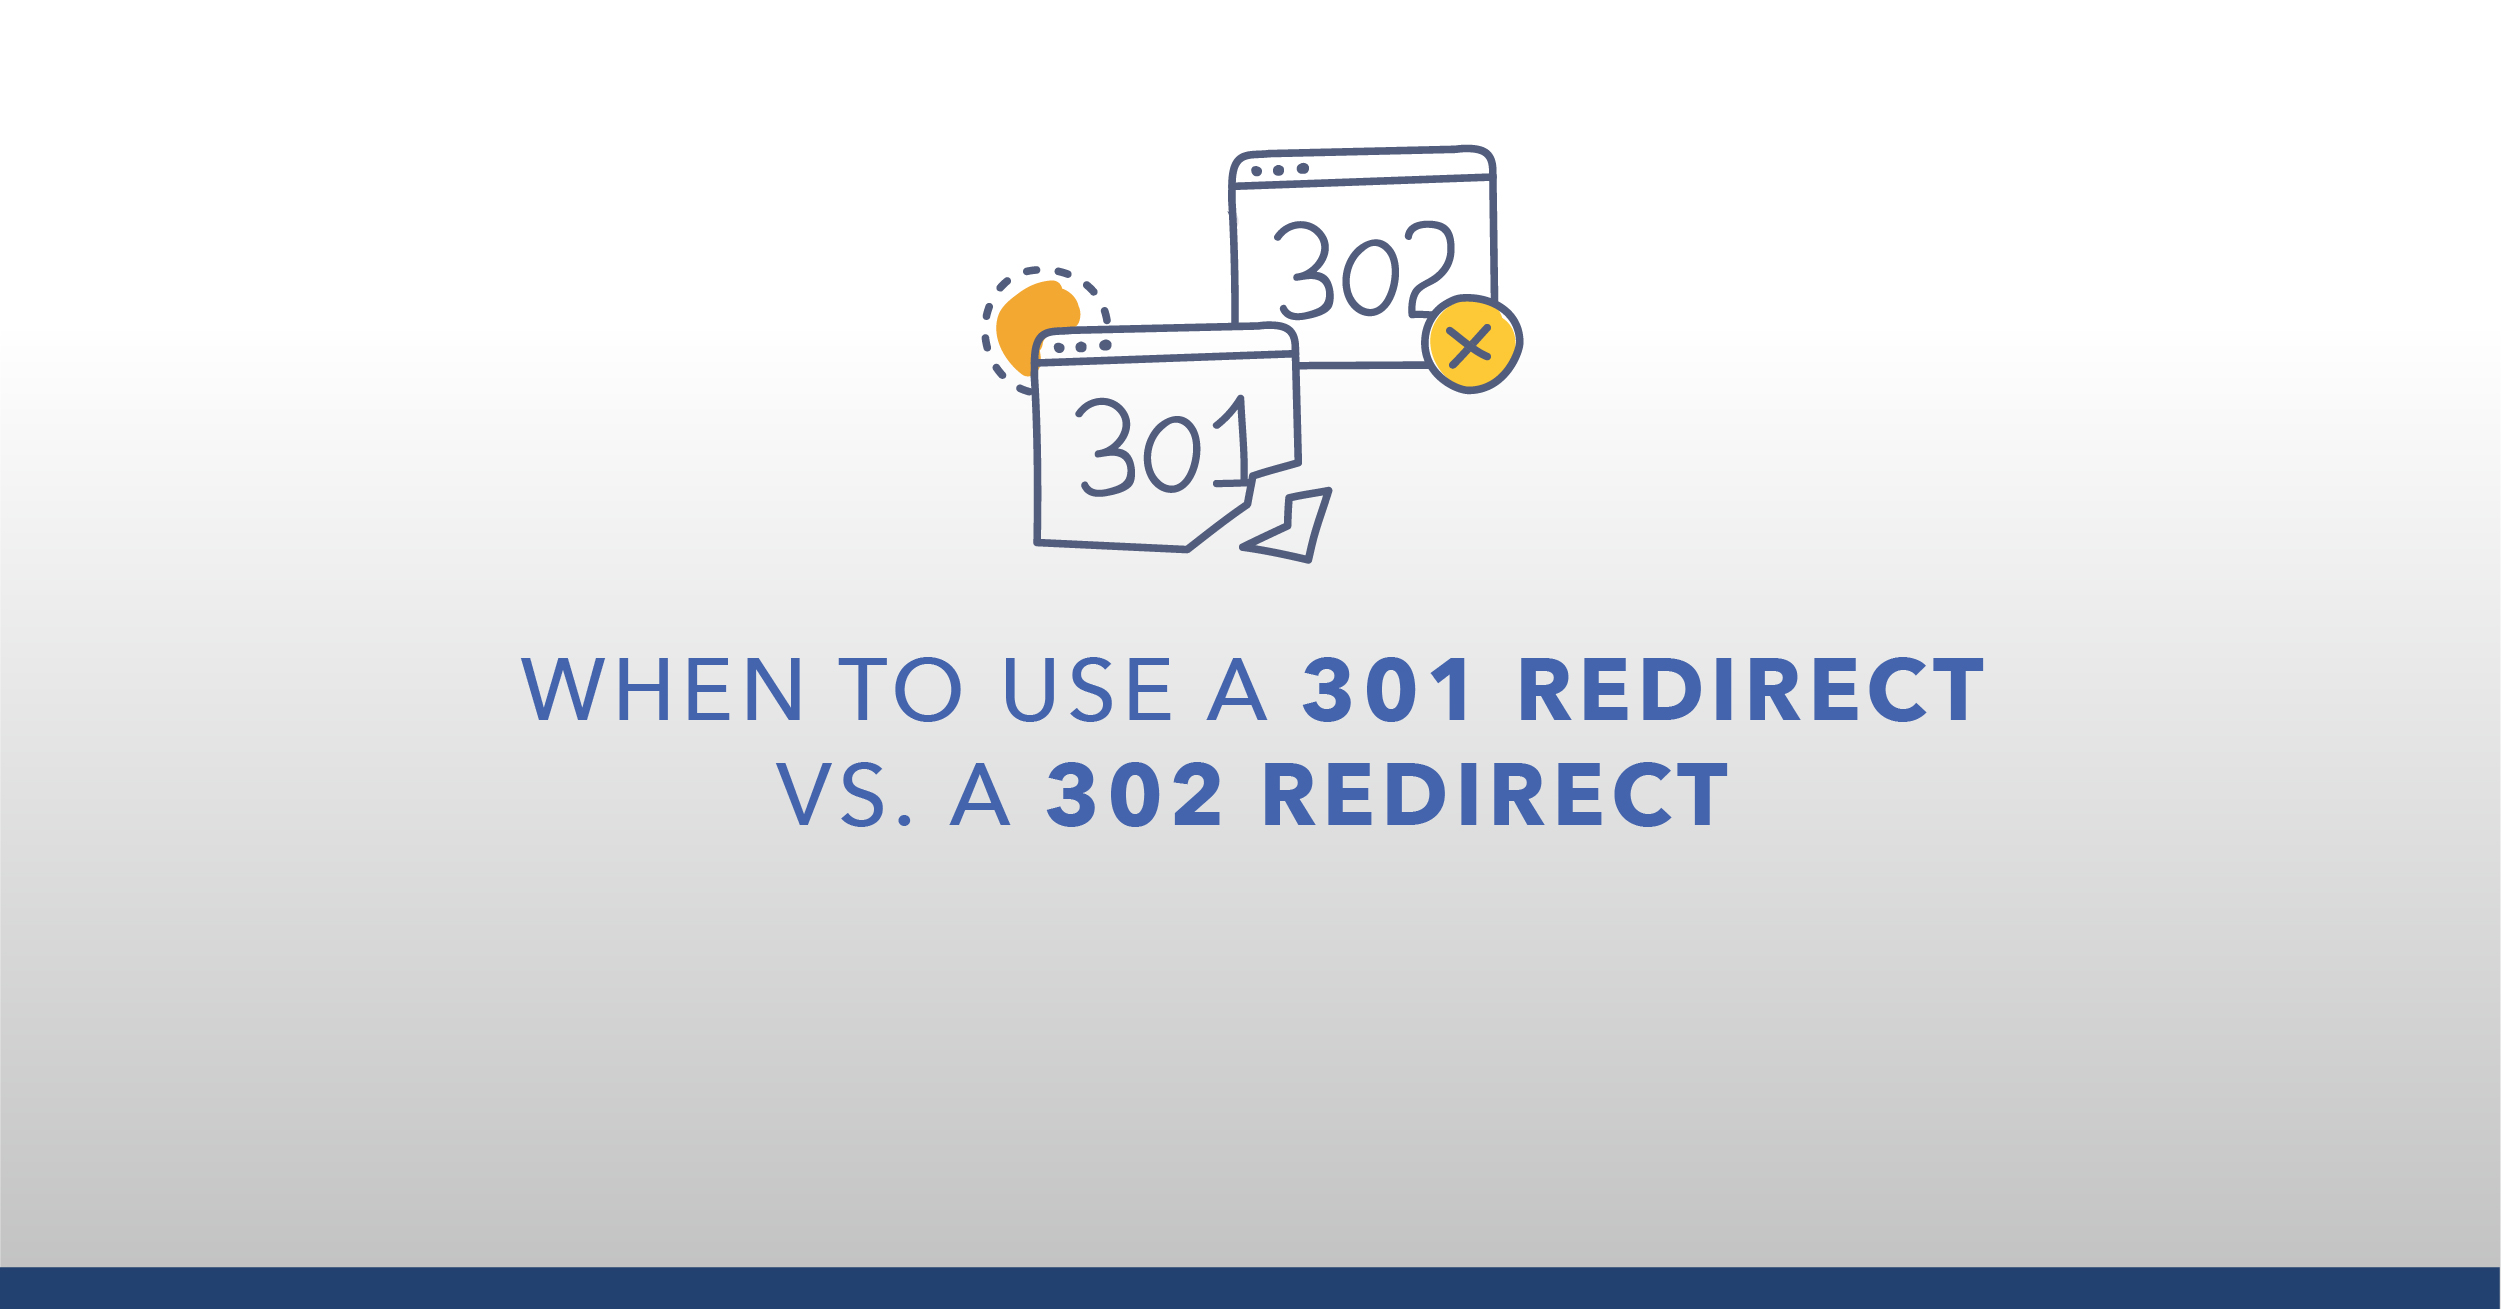 When to Use a 301 Redirect vs. 302 Redirect - Featured Image